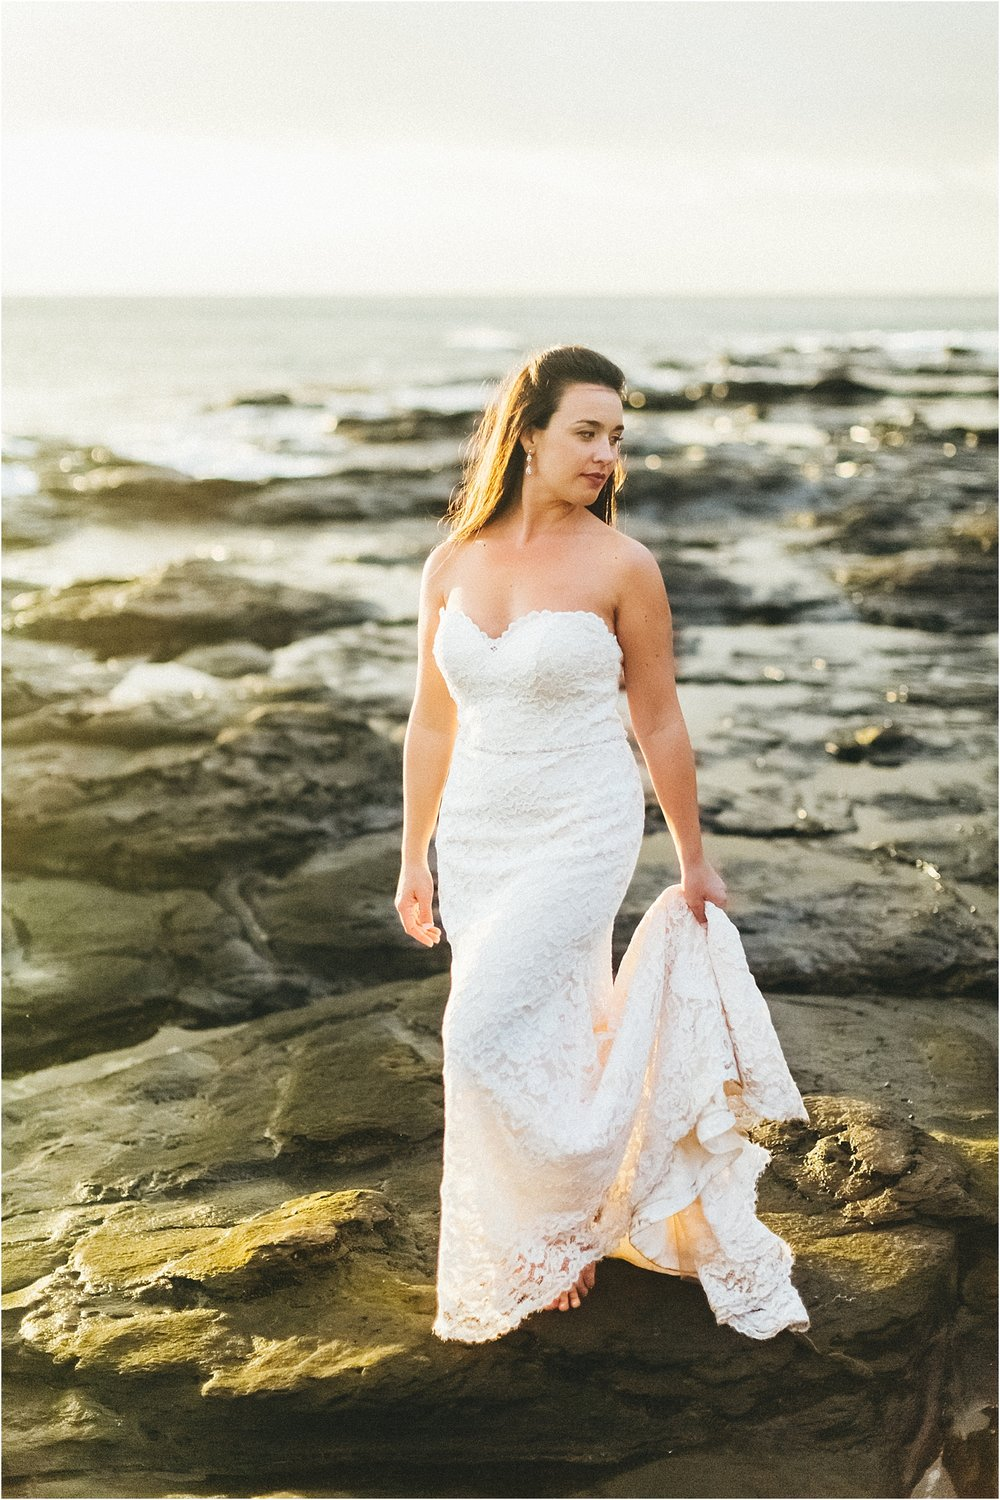 angie-diaz-photography-maui-wedding-ironwoods-beach_0005.jpg